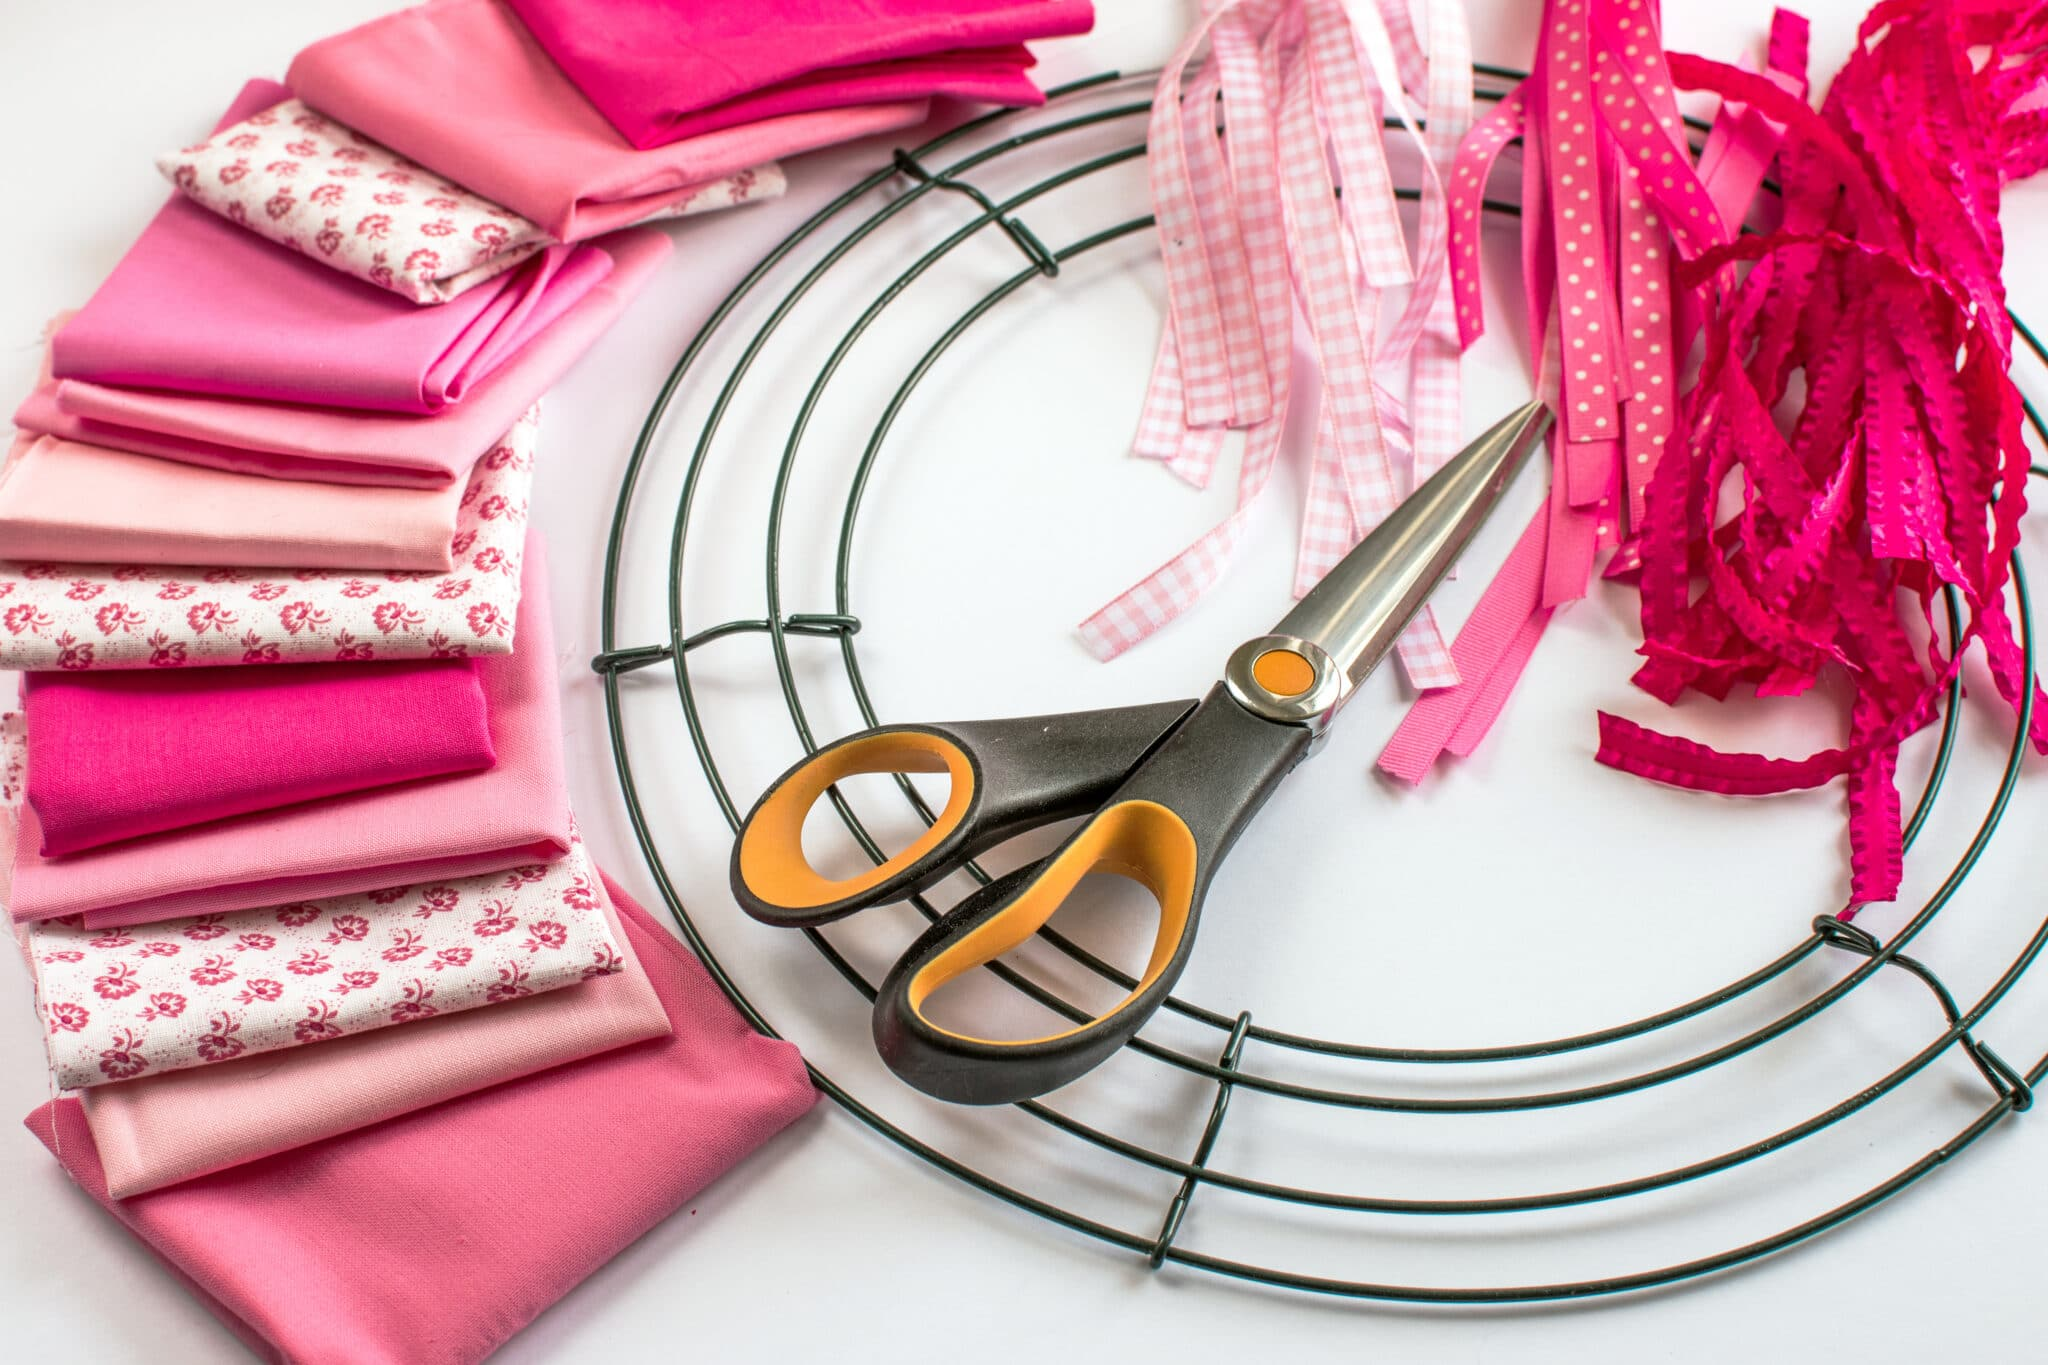 Wreath making supplies on a bright white table top.  Fiskars scissors, ribbon, fabric quarters and a wire wreath form.